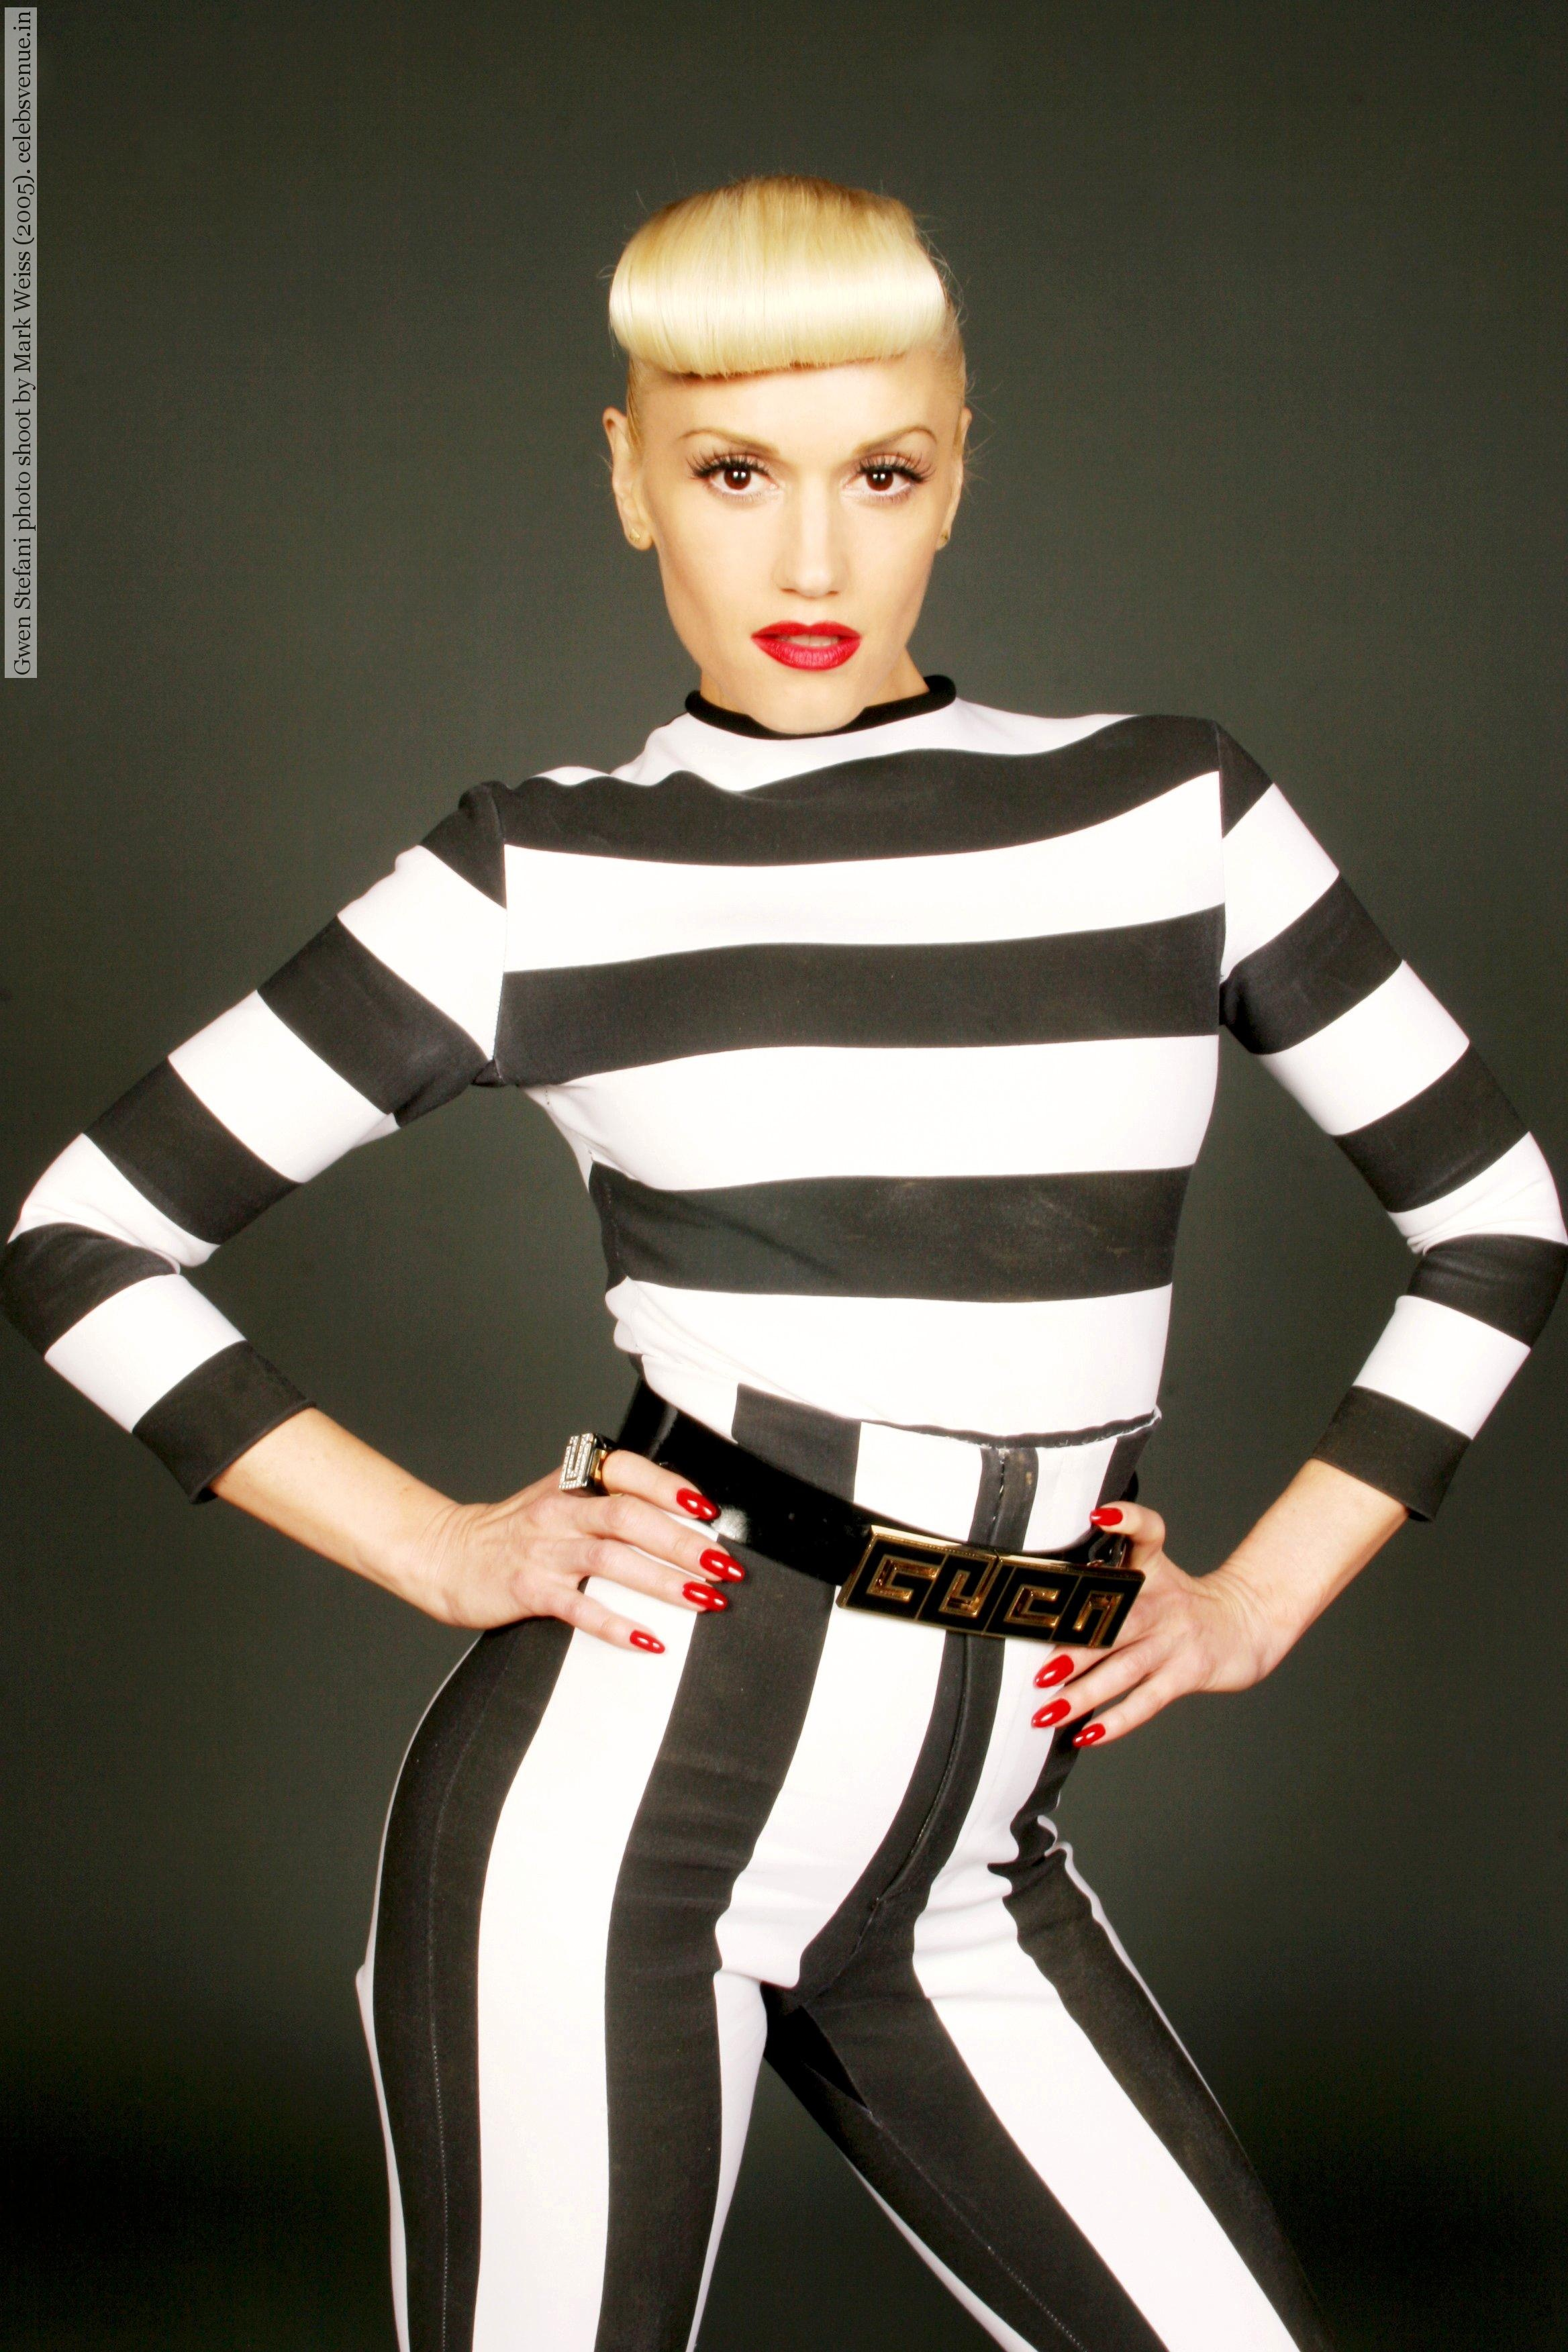 Gwen Stefani photo shoot by Mark Weiss (2005)